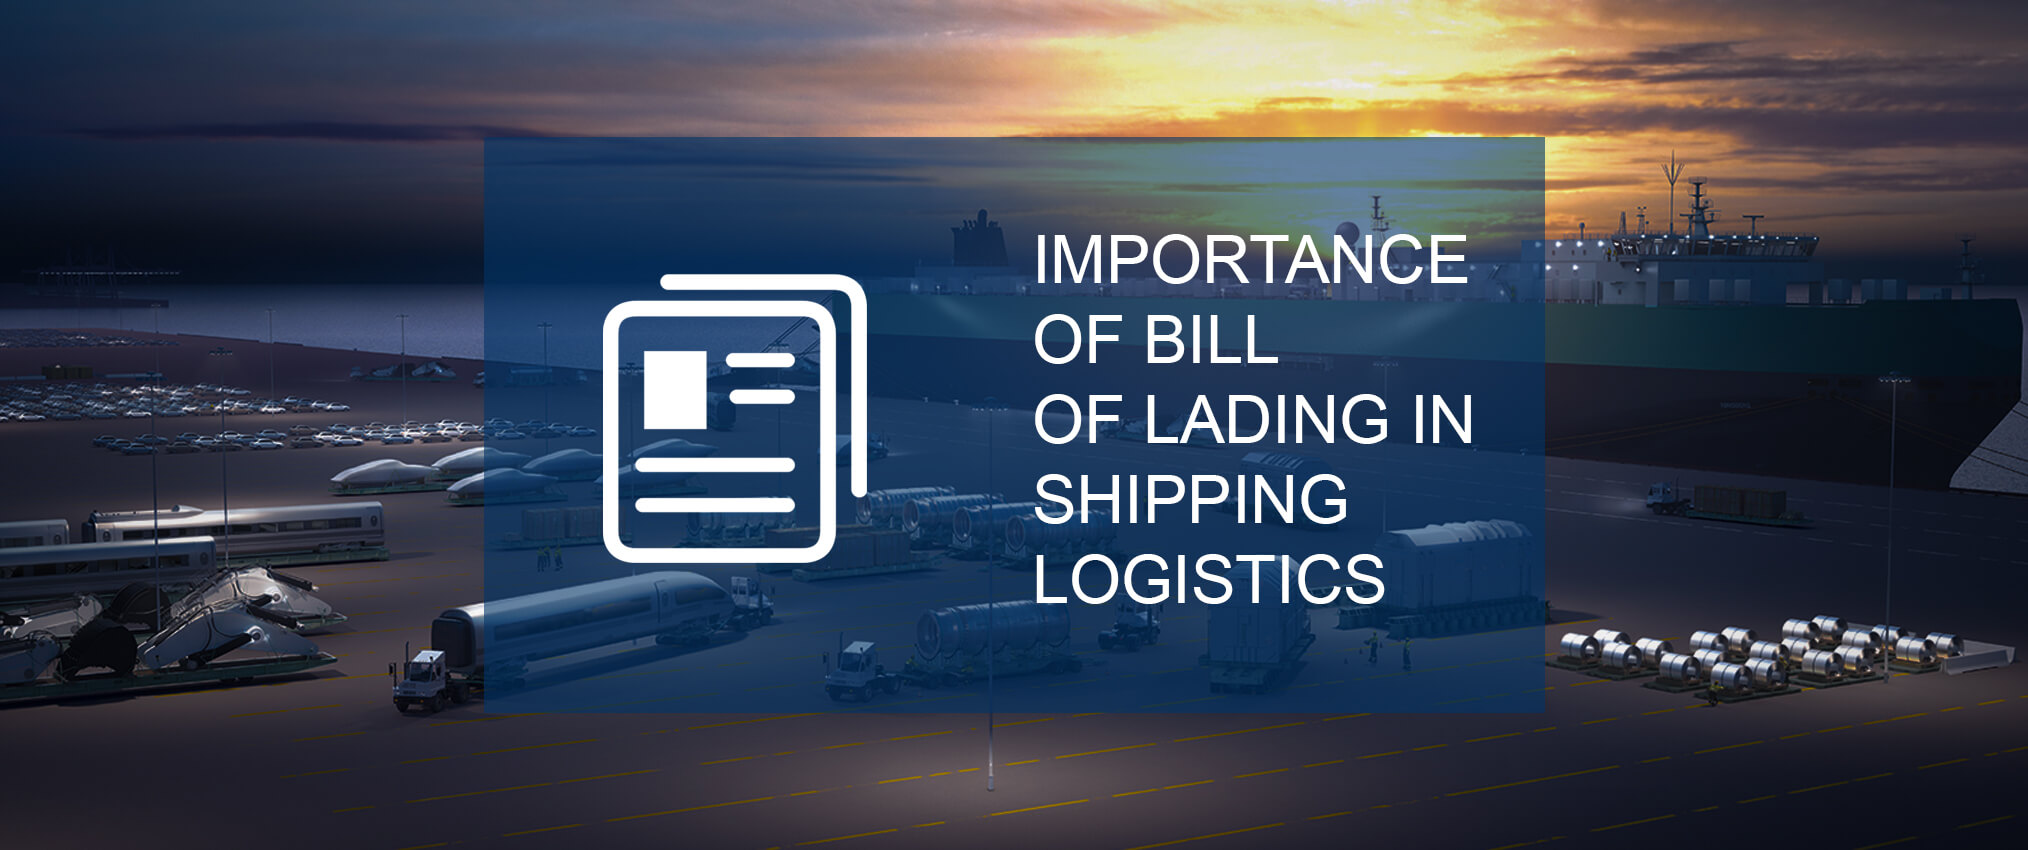 importance-of-bill-of-lading-in-shipping-logistics